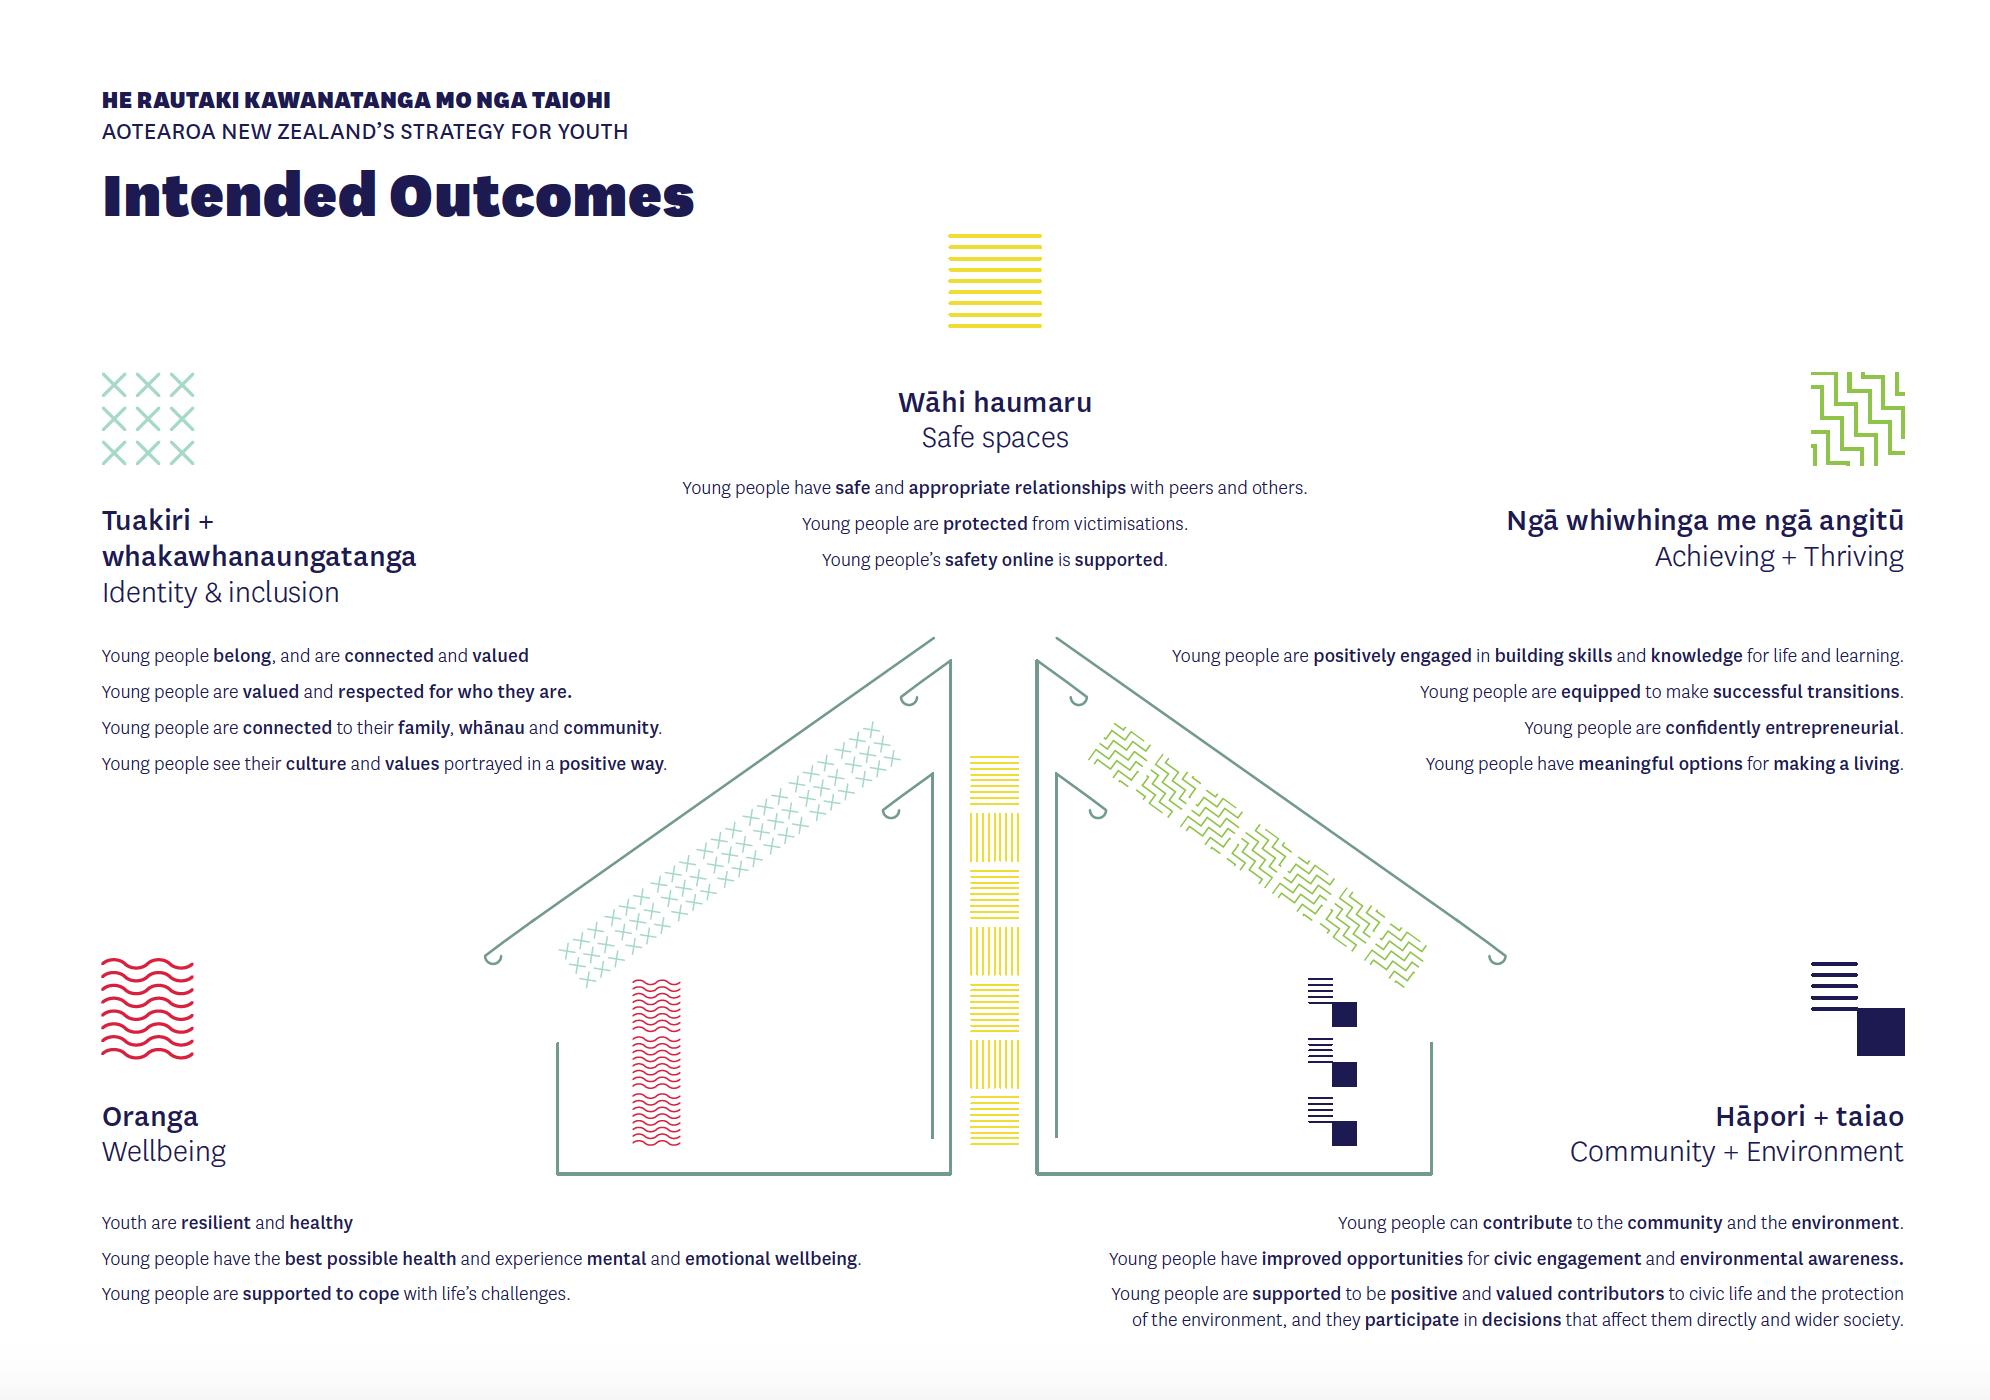 Intended Outcomes as part of Aotearoa New Zealand's Strategy for Youth